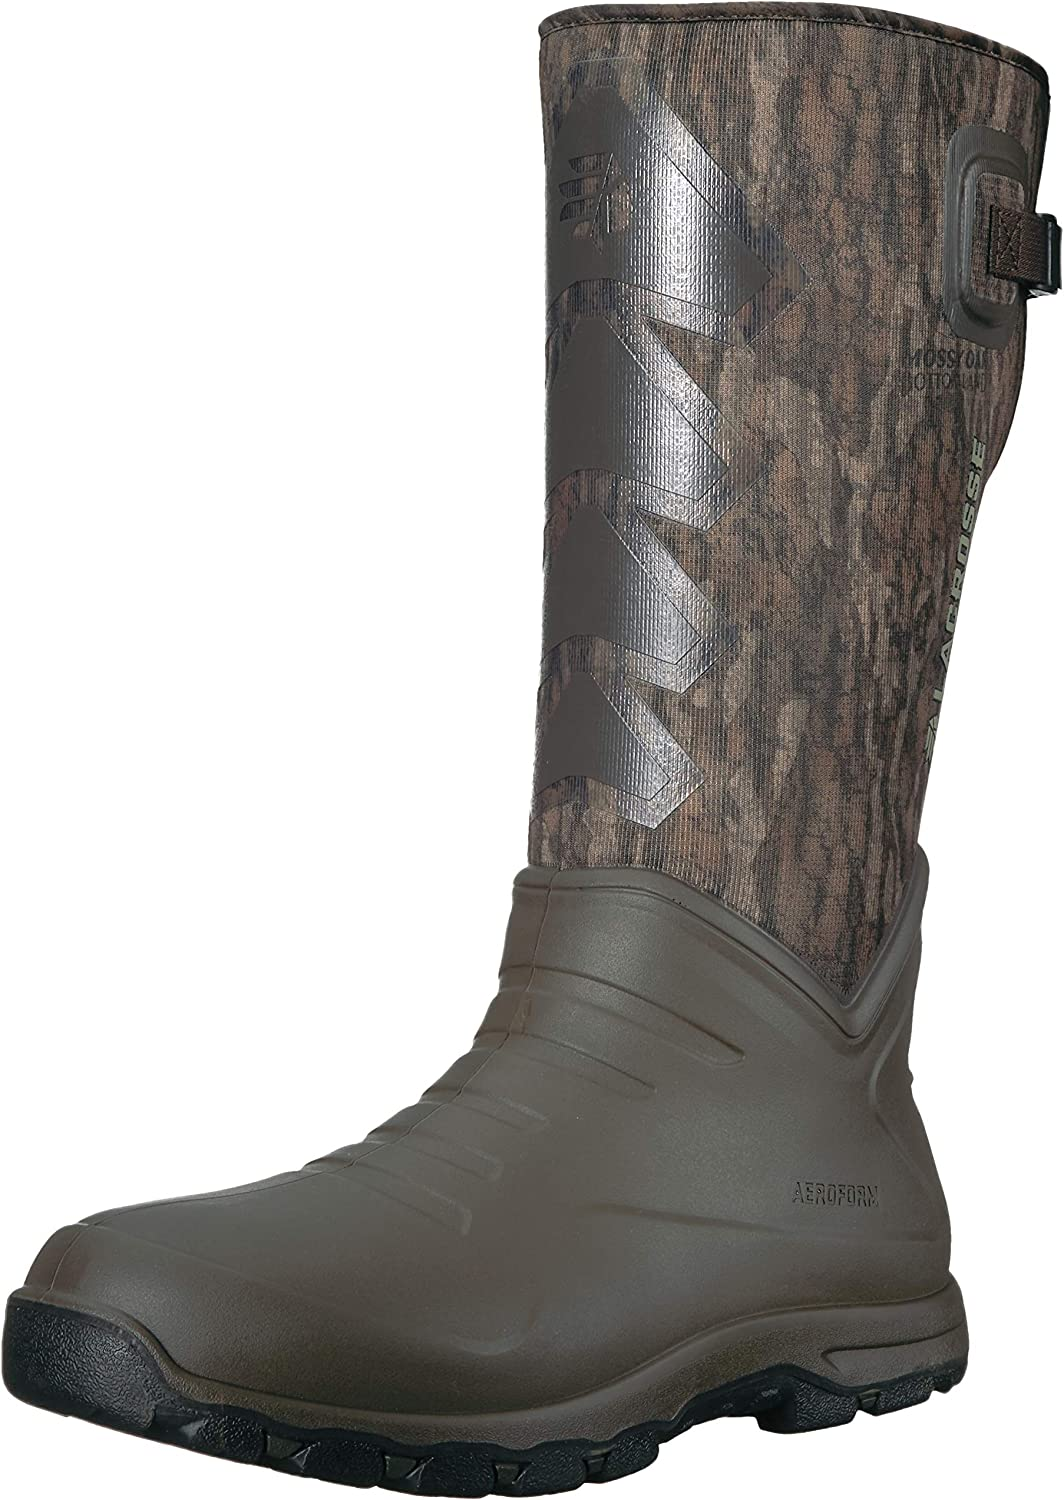 "LaCrosse Men's Aerohead Sport 16"" 7.0mm Knee High Boot"